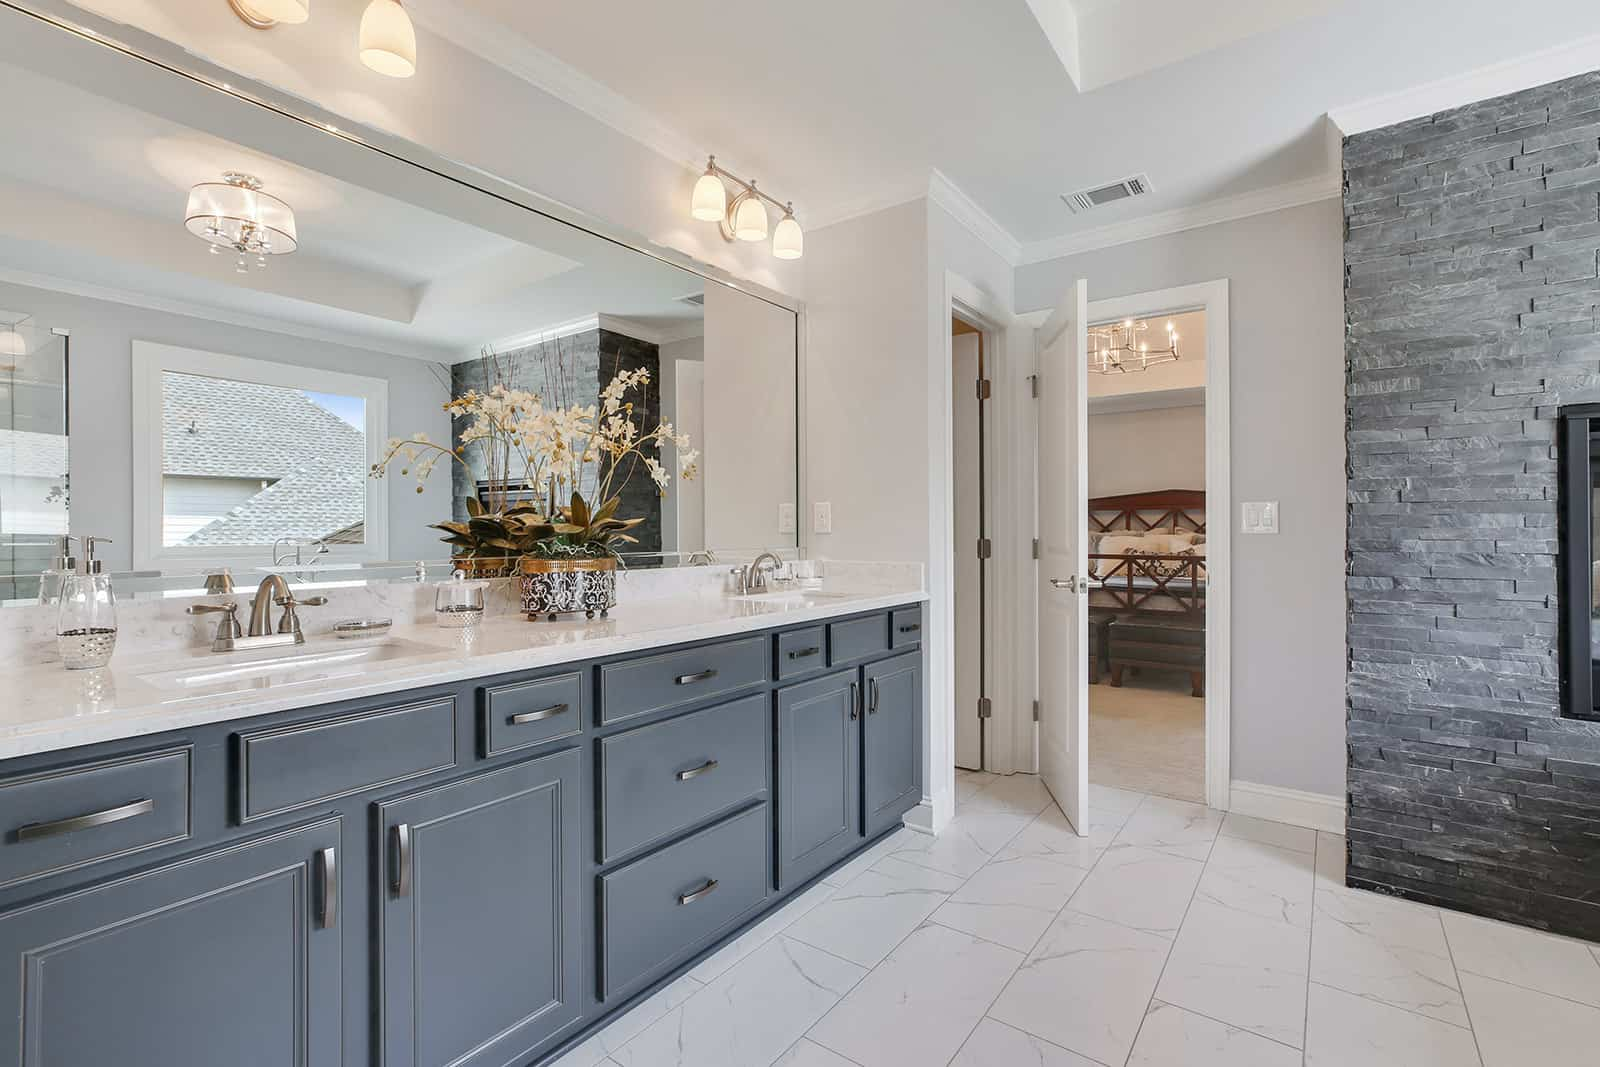 luxurious owners suite bathroom with dual vanities, soaking tub and frameless shower